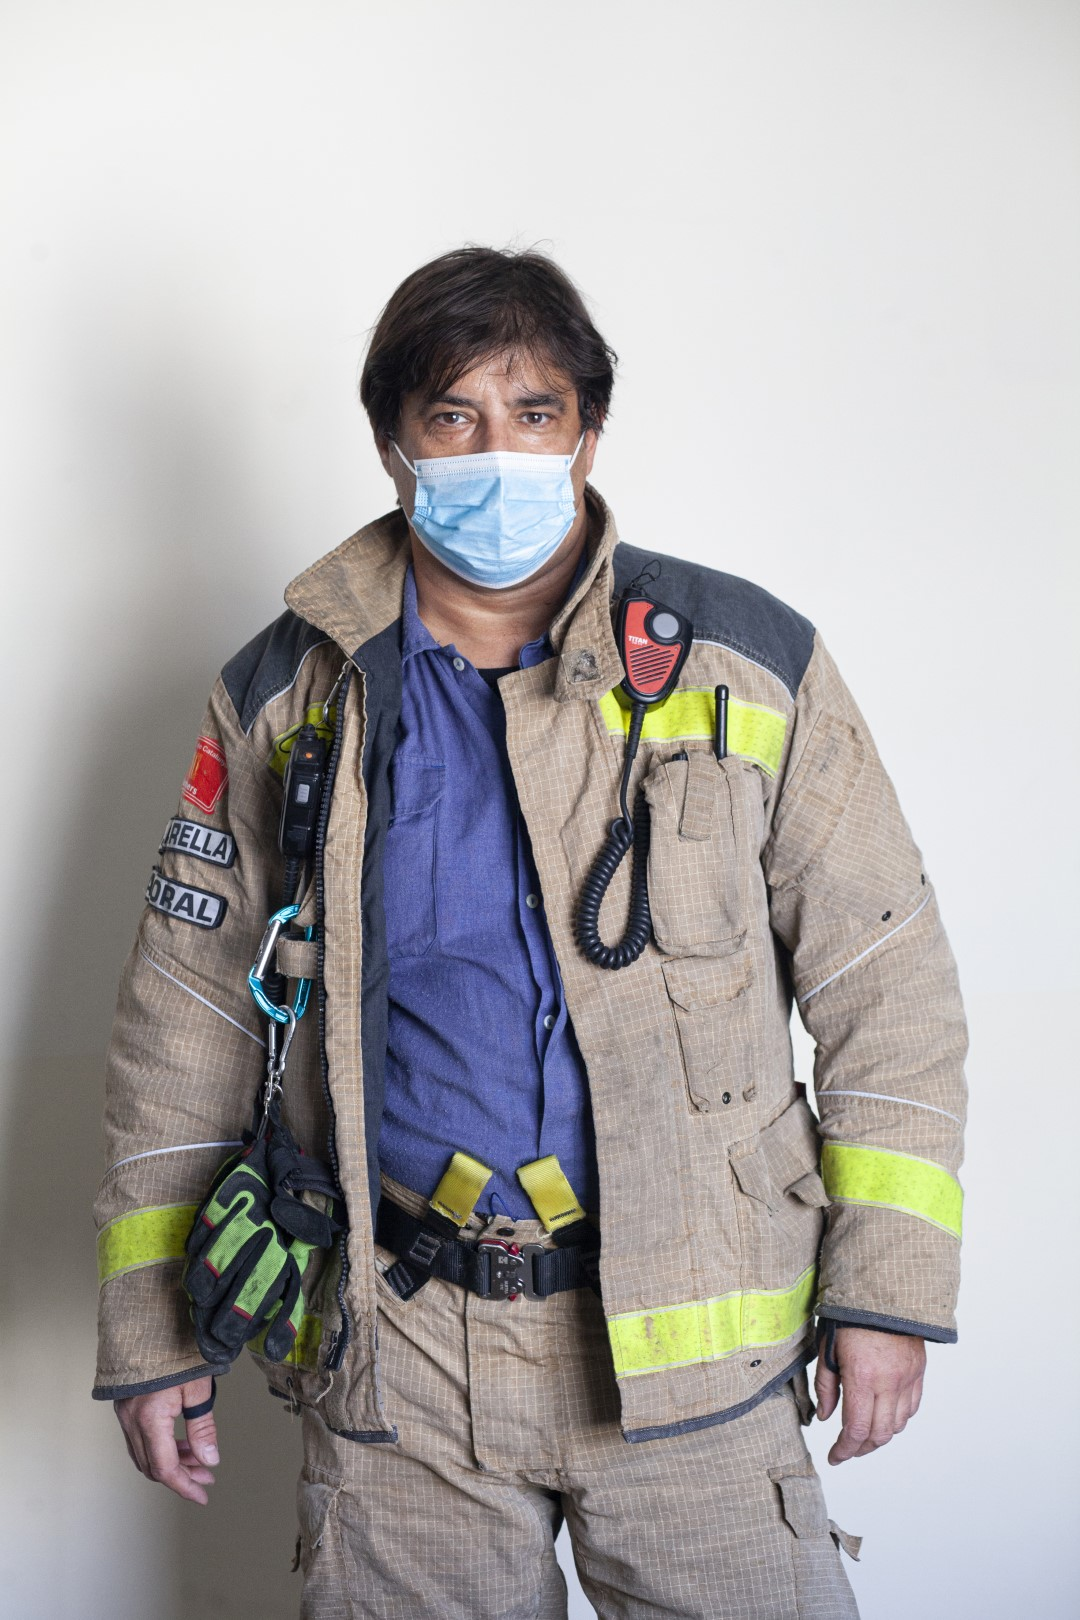 To the front line. Faces from different sectors that stand firm in the fight against COVID-19. Joan Bernat Clarella, firefighter. April 9, 2020; Sabadell, Barcelona.